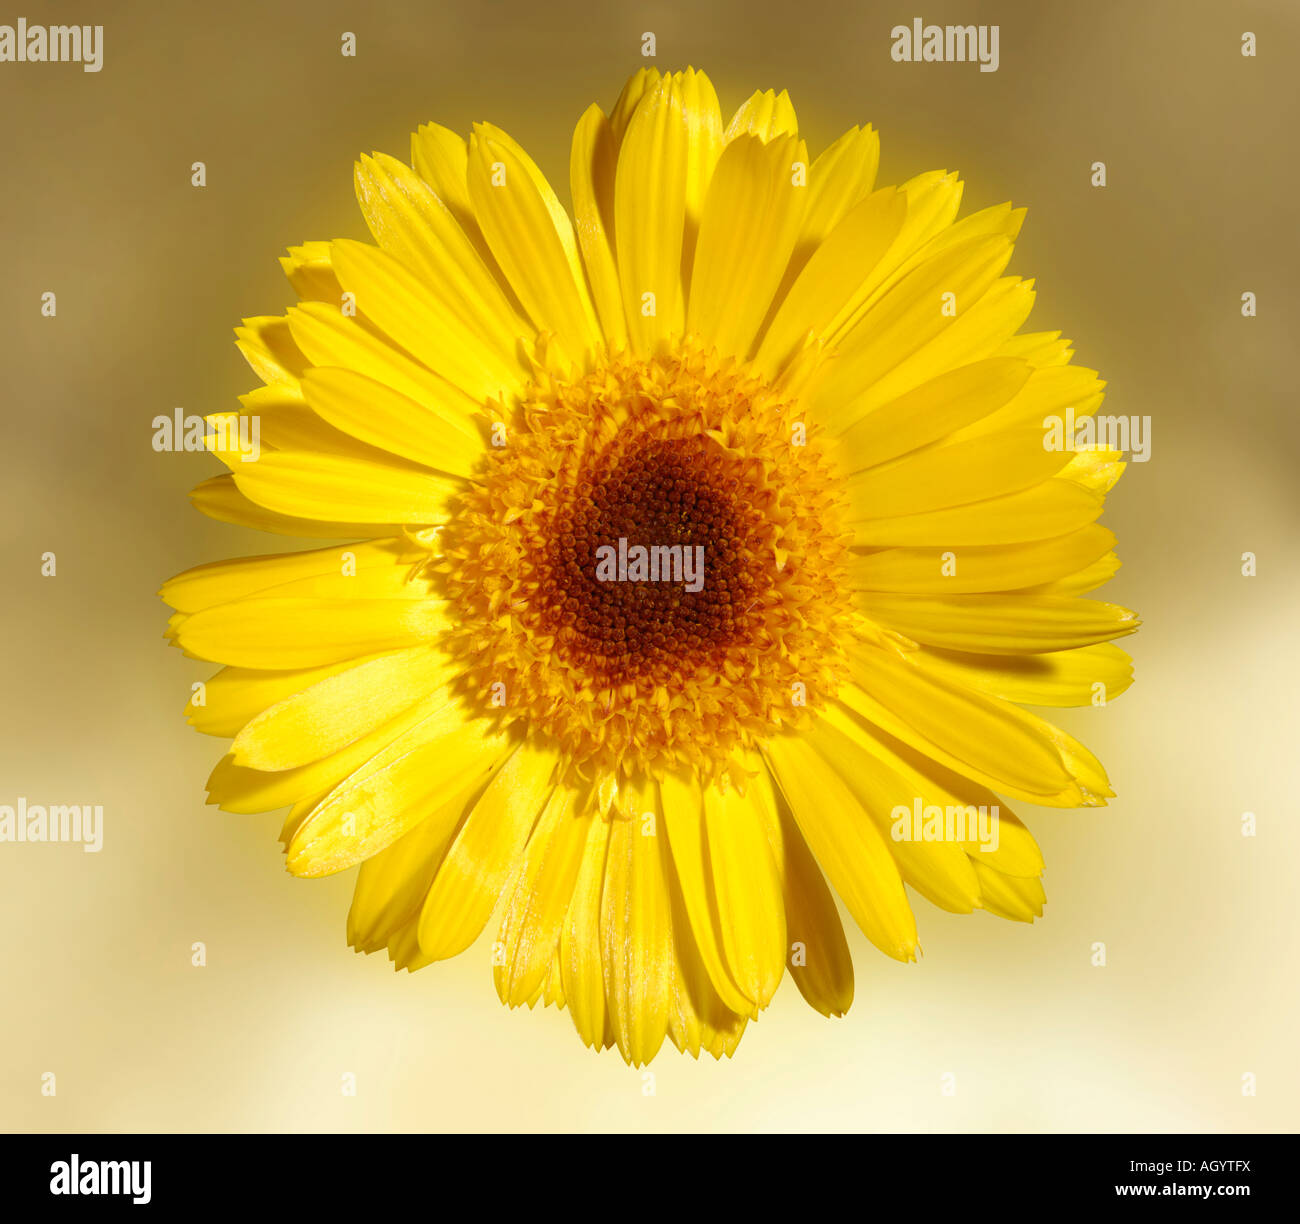 Yellow daisy type flower stock photo royalty free image 14311549 stock photo yellow daisy type flower dhlflorist Images